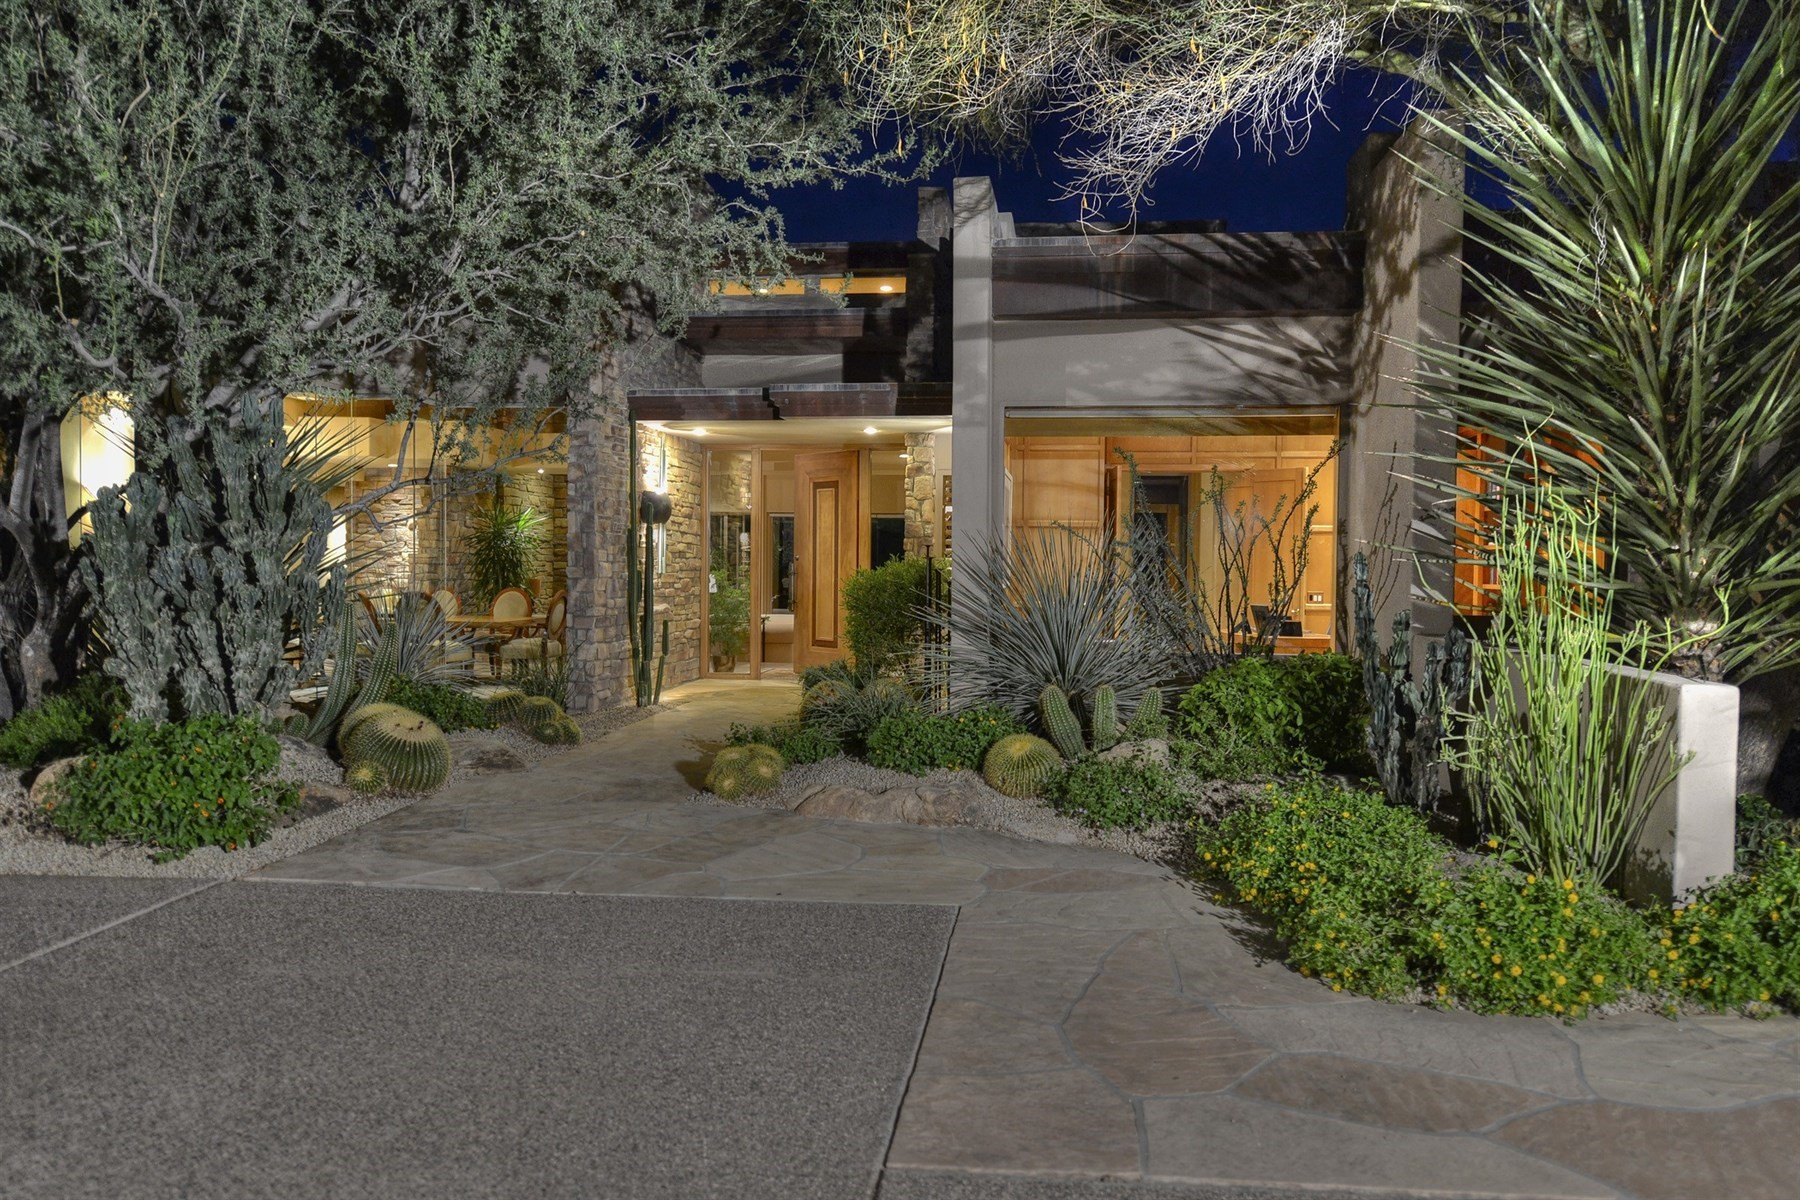 Single Family Home for Sale at Stunning Soft Contemporary 27597 N 96th Pl, Scottsdale, Arizona, 85262 United States